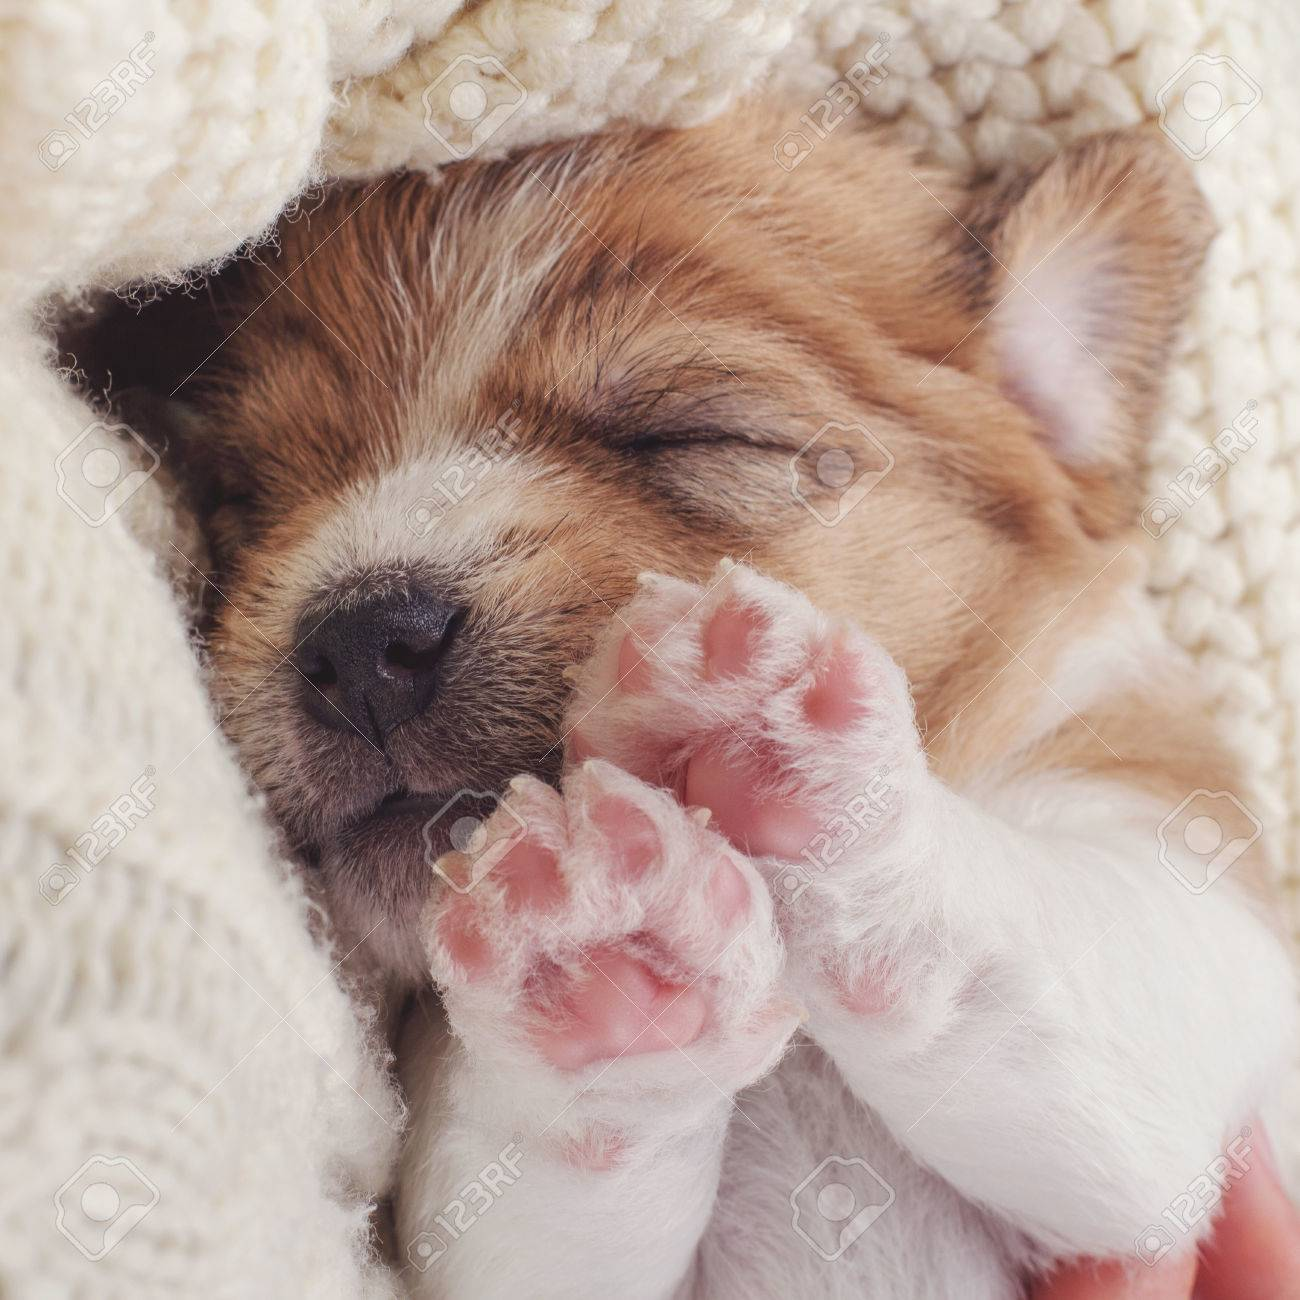 Baby Dog Sleeping Sweet Cute Puppy Asleep On Soft Cozy Wool Stock Photo Picture And Royalty Free Image Image 69660903